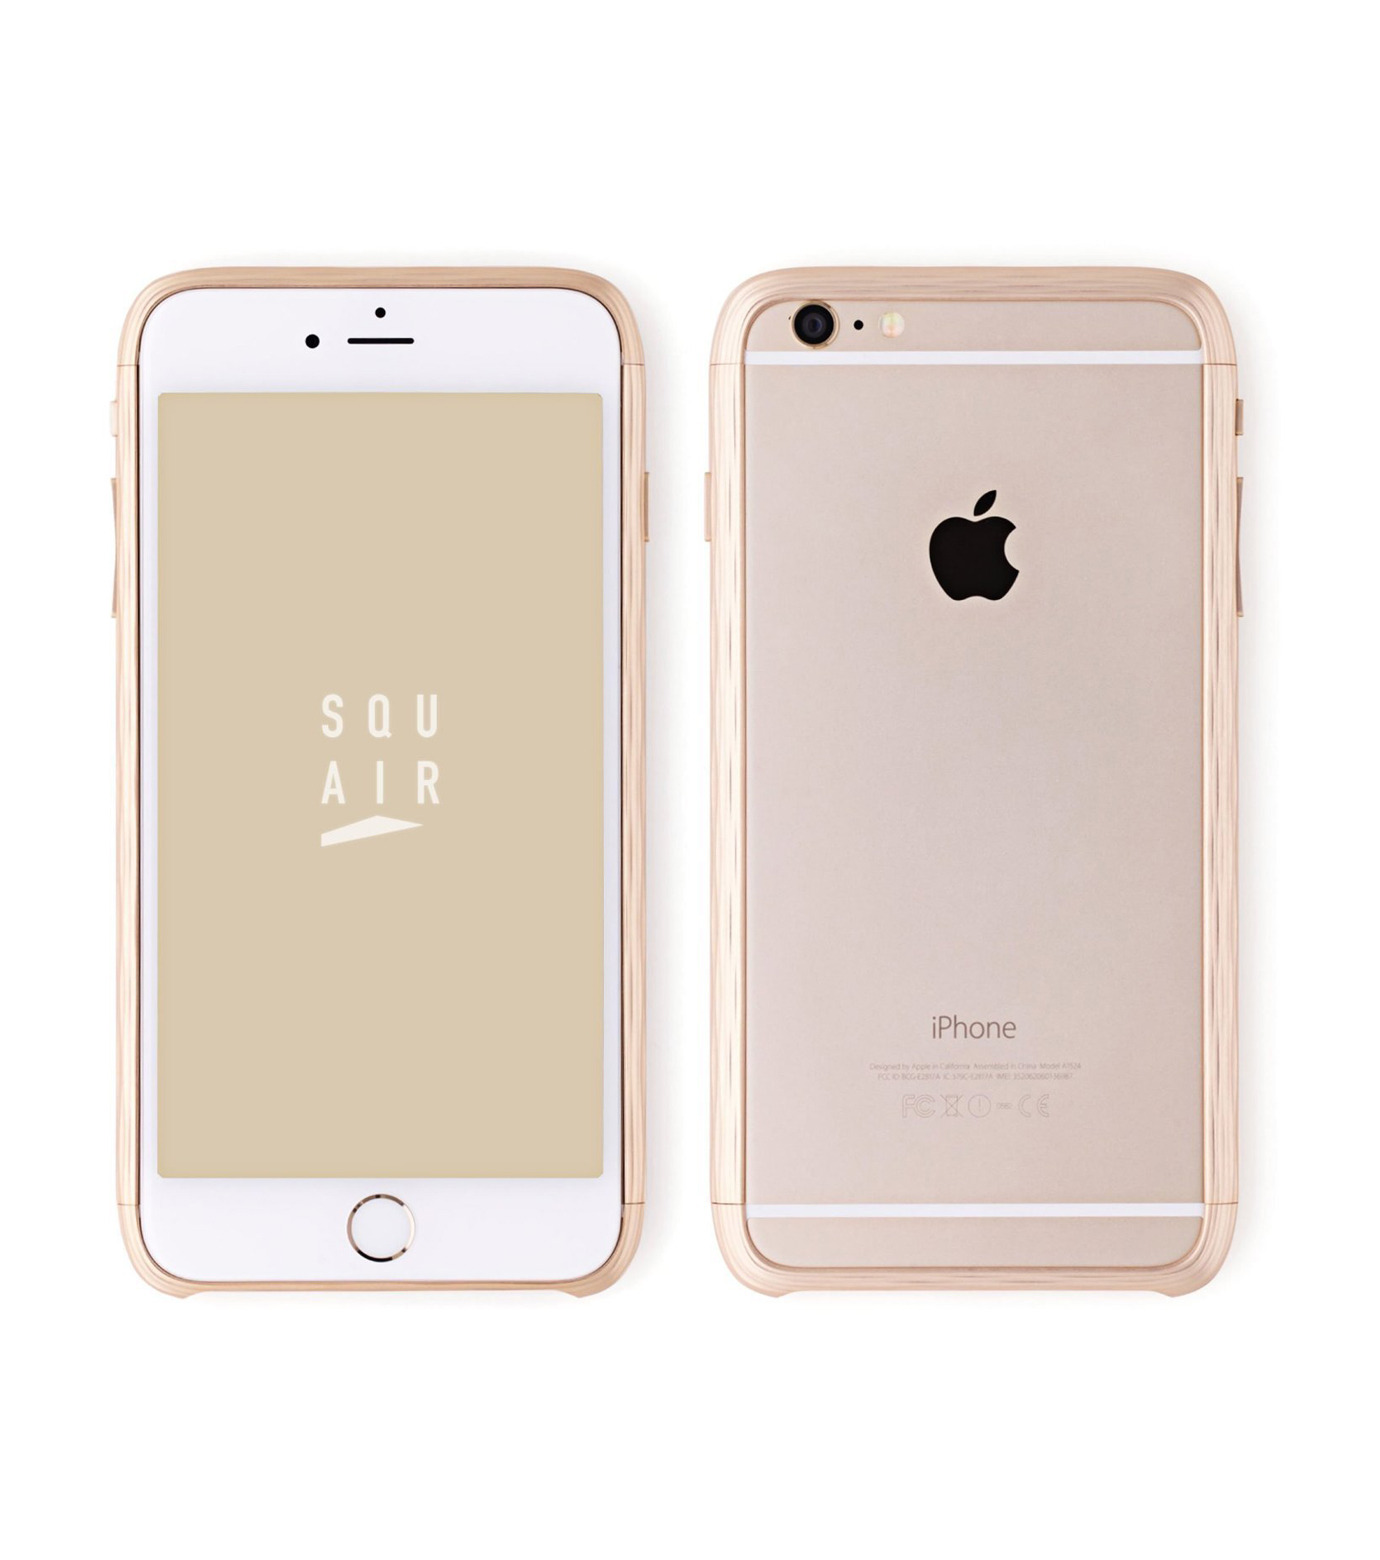 SQUAIR(スクエア)のThe Dimple for iPhone6-GOLD(ケースiphone6/6s/case iphone6/6s)-SQDMP620-GLD-2 拡大詳細画像1